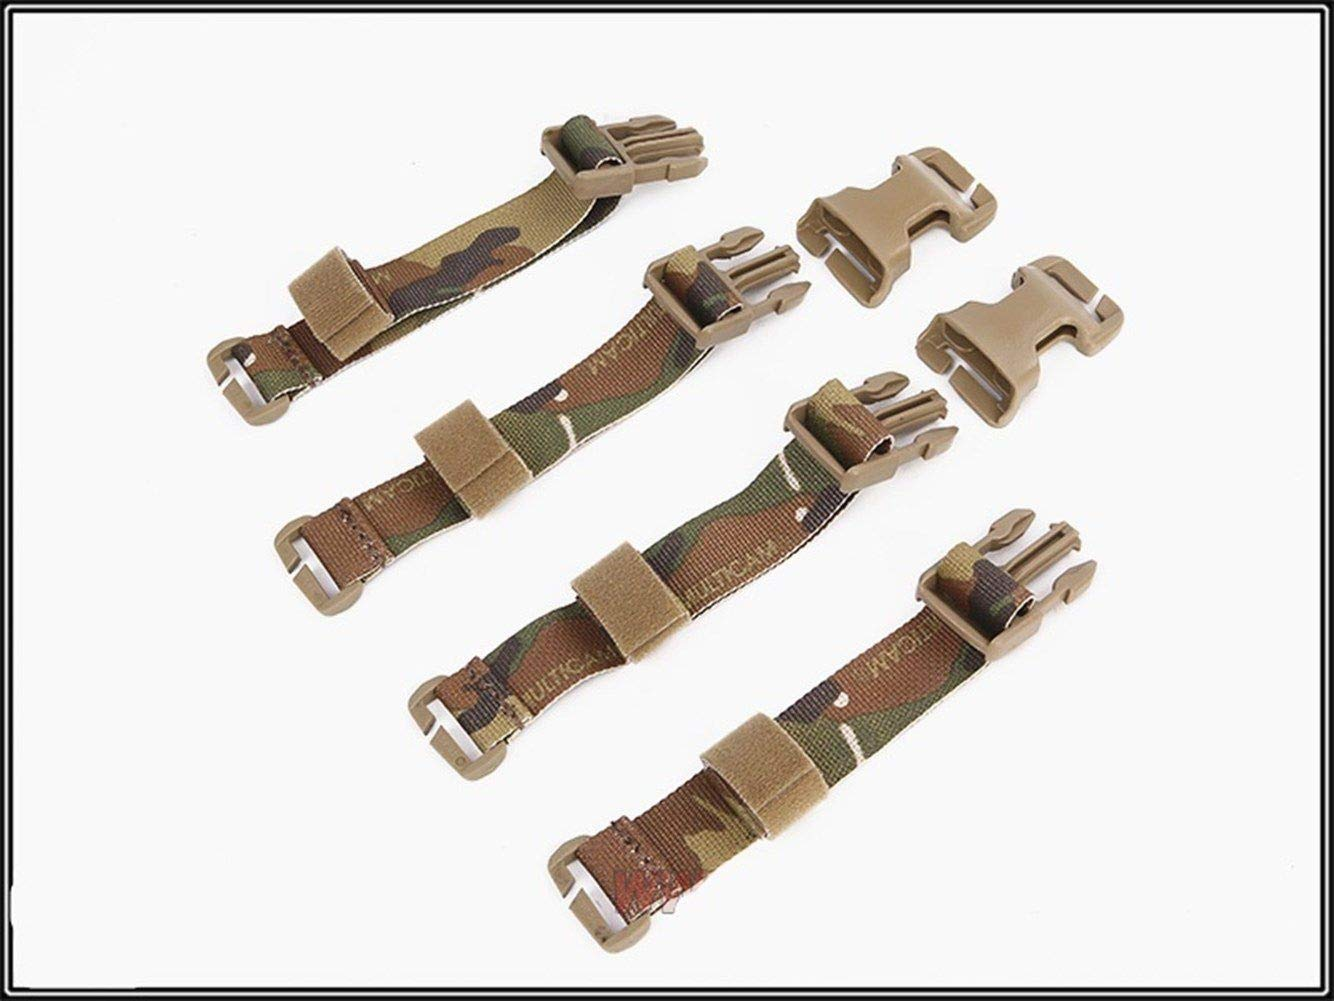 YANODA Jagd Weste Buckle Straps Set Adapter Kit F/ür Tactical Chest Rig Tactical Combat Weste Airsoft Gear Jacke